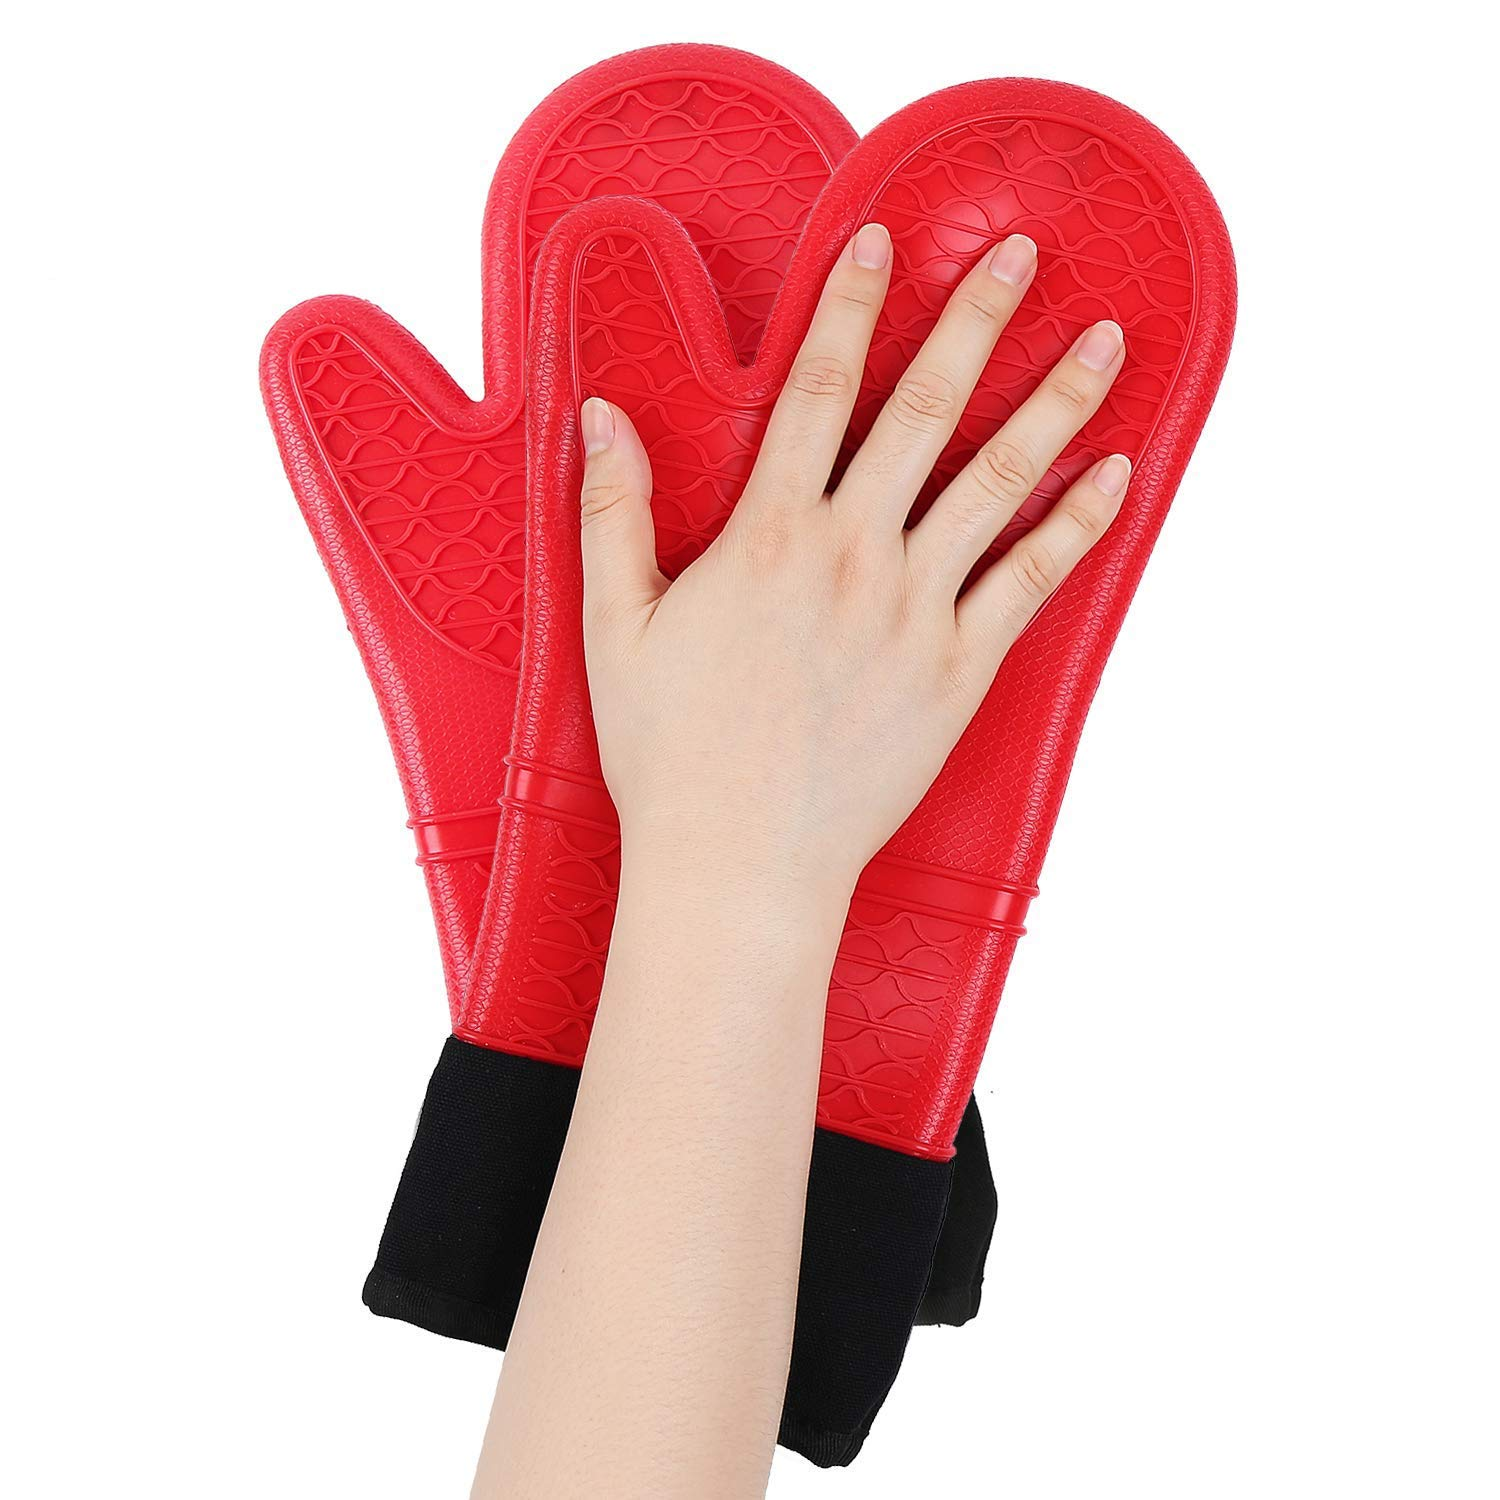 Home Extra Long Silicone Oven Mitt - Heat Resistant Professional Kitchen Oven Gloves with Quilted Liner & Non-Slip Textured, Machine Washable for Cooking, Baking Grilling, BBQ, Microwave 1 Pair